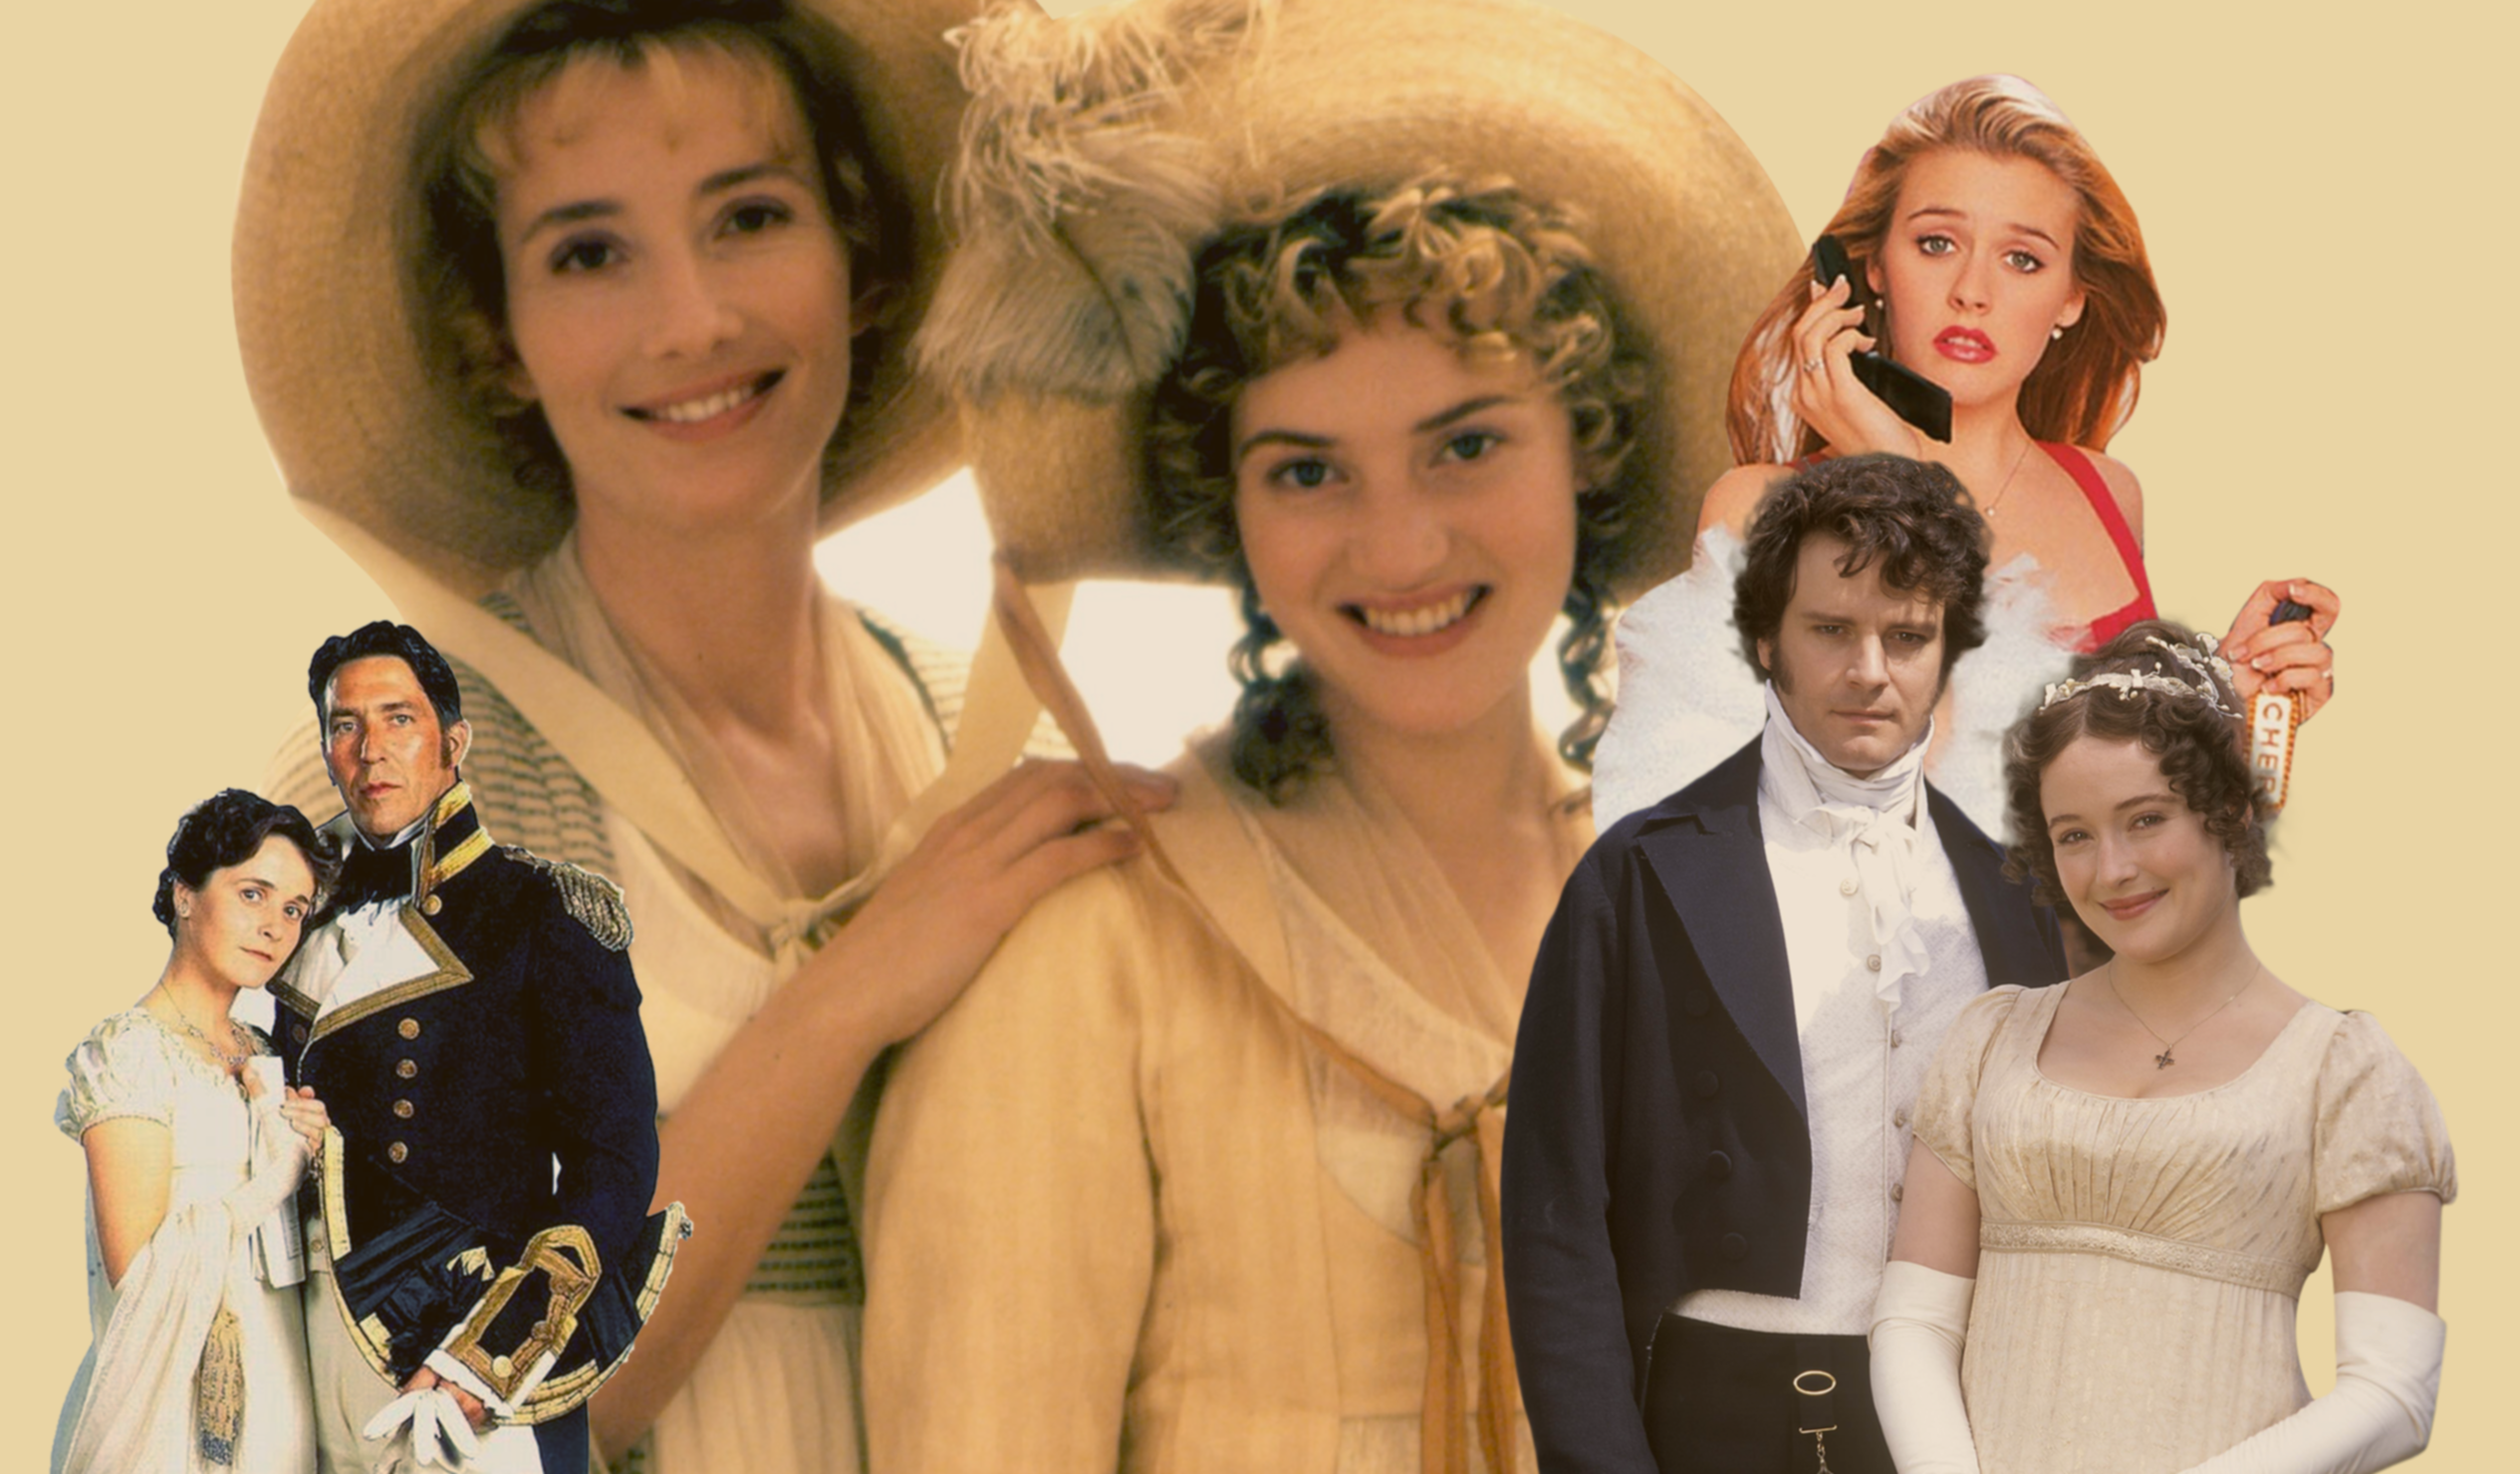 Austenmania: why 1995 was the year Jane Austen catapulted into pop culture